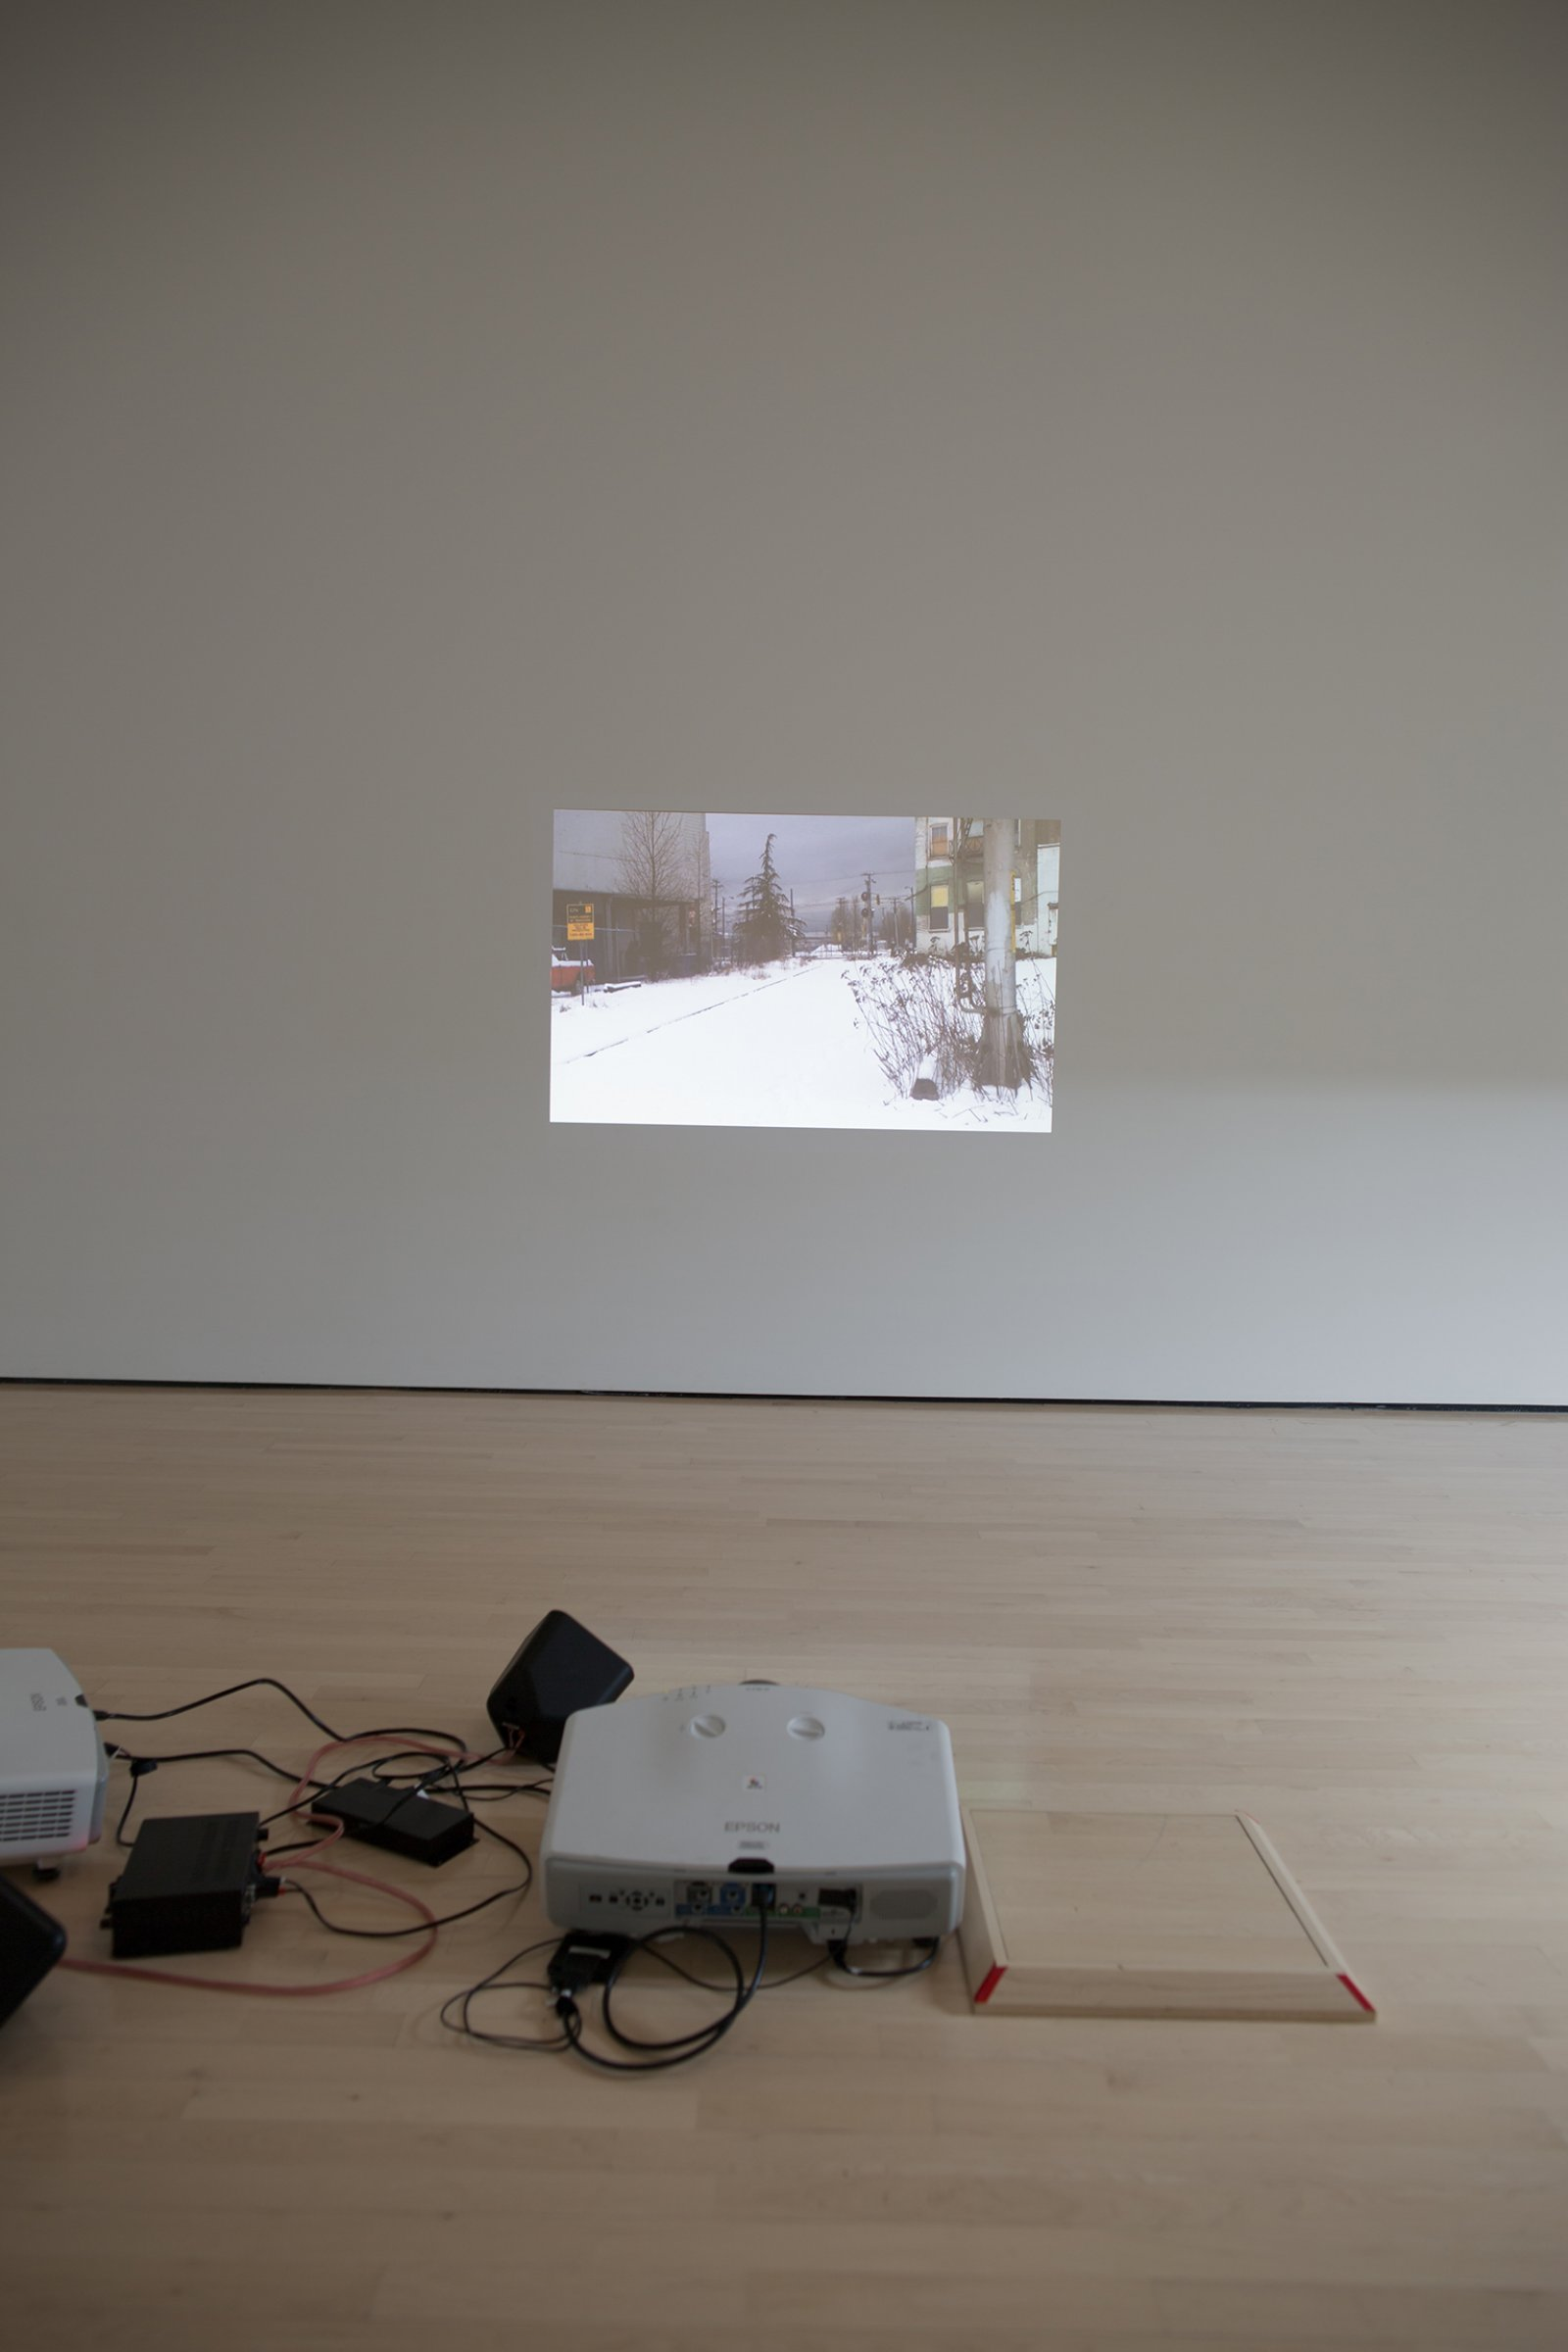 Duane Linkater, Something about encounter, 2011–2013, video projection, 8 minutes, 41 seconds. Installation view, Field Station: Duane Linklater, MSU Broad, East Lansing, MI, 2017 by Duane Linklater